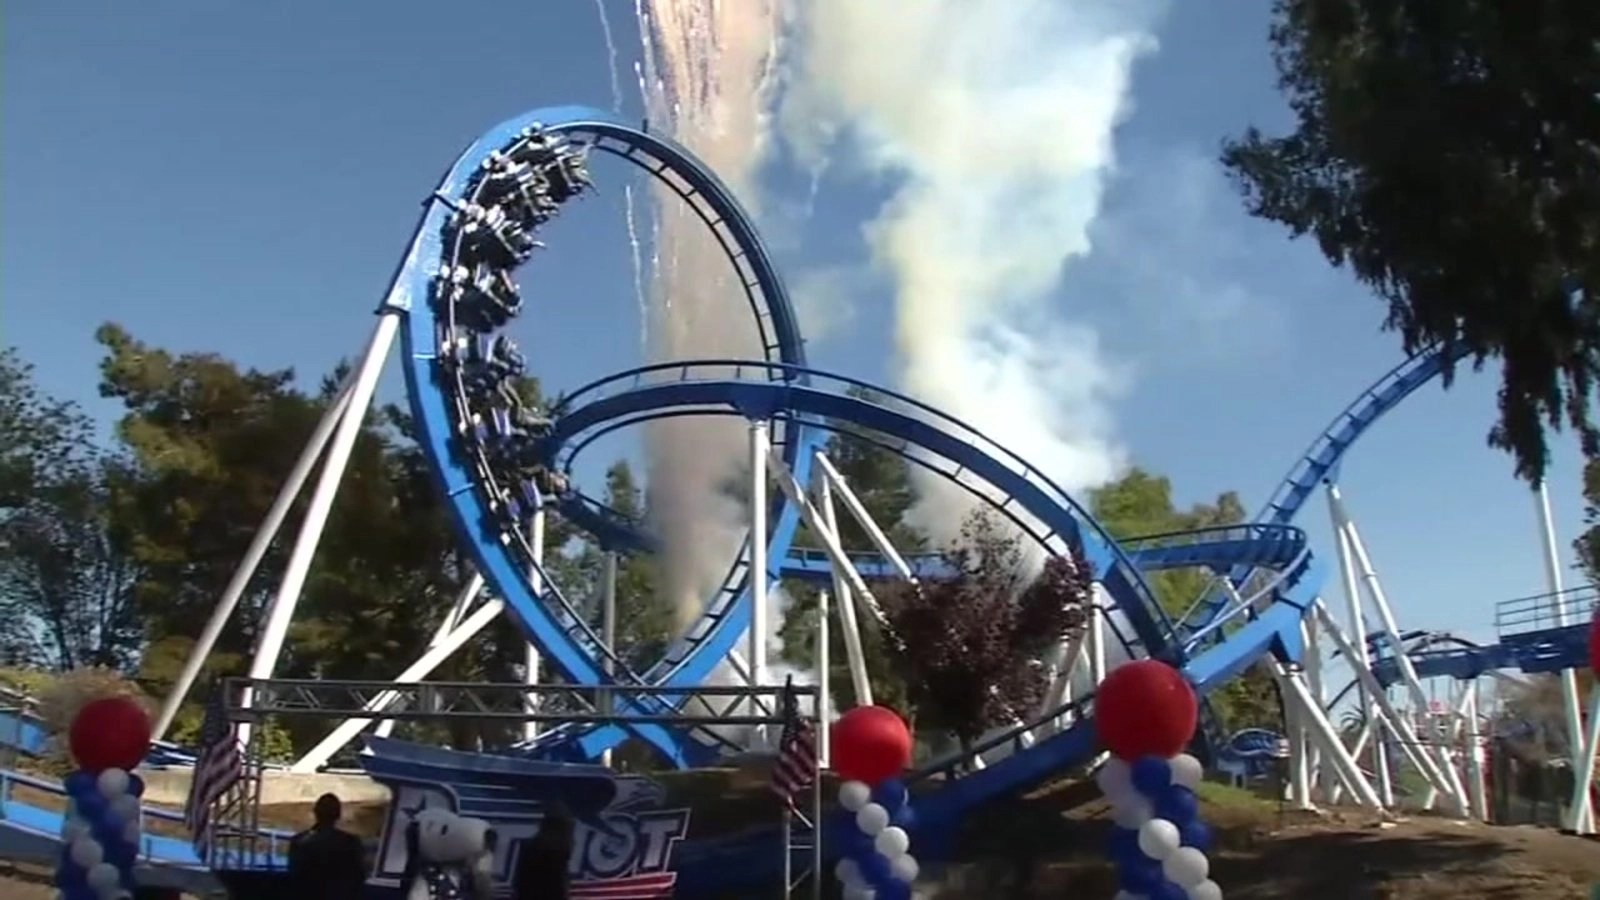 Theme parks like Great America, Discovery Kingdom prepare for reopening under new California COVID-19 guidelines